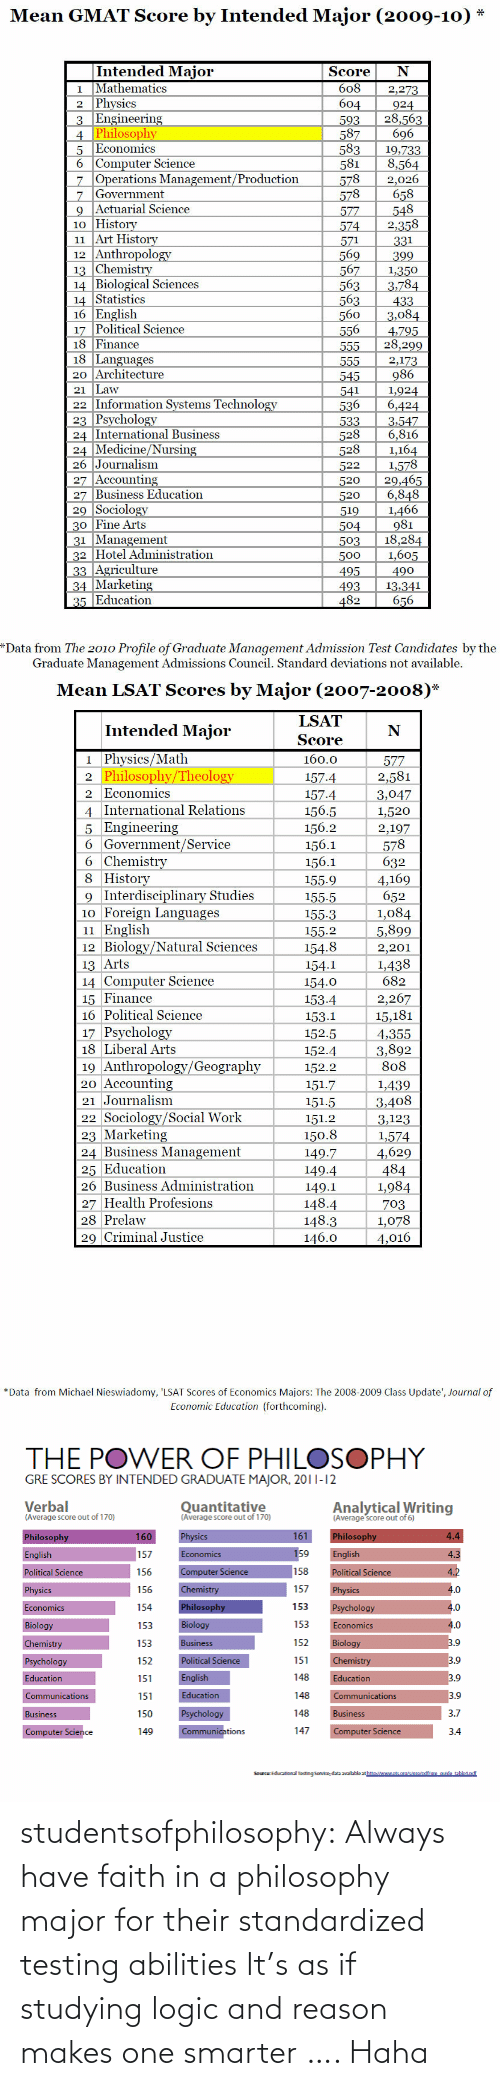 lsat: Mean GMAT Score by Intended Major (2009-10) *  Intended Major  Mathematics  2 Physics  3 Engineering  4 Philosophy  5 Economics  6 Computer Science  7 Operations Management/Production  7 Government  Actuarial Science  10 History  11 Art History  12 Anthropology  13 Chemistry  14 Biological Sciences  14 Statistics  16 English  17 Political Science  18 Finance  18 Languages  20 Architecture  21 Law  22 Information Systems Technology  23 Psychology  24 International Business  24 Medicine/Nursing  26 Journalism  27 Accounting  27 Business Education  29 Sociology  30 Fine Arts  31 Management  32 Hotel Administration  33 Agriculture  34 Marketing  35 Education  Score  608  2,273  604  593  587  583  581  578  578  924  28,563  696  19,733  8,564  2,026  658  548  2,358  577  574  571  569  567  563  563  560  556  331  399  1,350  3,784  433  3,084  4,795  28,299  555  555  2,173  986  545  541  536  533  528  528  1,924  6,424  3,547  6,816  1,164  1,578  29,465  6,848  1,466  981  18,284  1,605  490  522  520  520  519  504  503  500  495  493  13,341  656  482  *Data from The 2010 Profile of Graduate Management Admission Test Candidates by the  Graduate Management Admissions Council. Standard deviations not available.   Mean LSAT Scores by Major (2007-2008)*  LSAT  Intended Major  Score  1 Physics/Math  2 Philosophy/Theology  2 Economics  160.0  577  2,581  157.4  157.4  3,047  4 International Relations  5 Engineering  6 Government/Service  6 Chemistry  8 History  9 Interdisciplinary Studies  10 Foreign Languages  11 English  12 Biology/Natural Sciences  156.5  156.2  156.1  156.1  1,520  2,197  578  632  4,169  652  1,084  5,899  155.9  155.5  155.3  155.2  154.8  2,201  1,438  13 Arts  154.1  14 Computer Science  15 Finance  16 Political Science  682  154.0  2,267  15,181  153.4  153.1  17 Psychology  18 Liberal Arts  152.5  4,355  3,892  808  152.4  19 Anthropology/Geography  20 Accounting  152.2  151.7  1,439  21 Journalism  3,408  151.5  22 Sociology/Social 